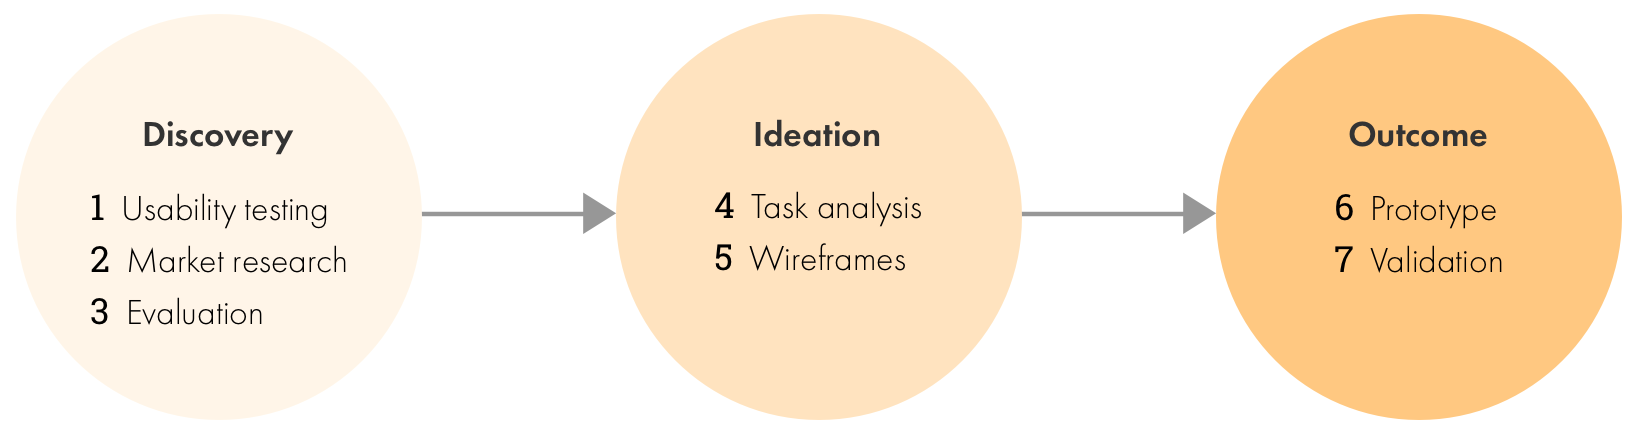 I used a seven-step process to uncover insights, evaluate the largest impact items, and validate the revisions.